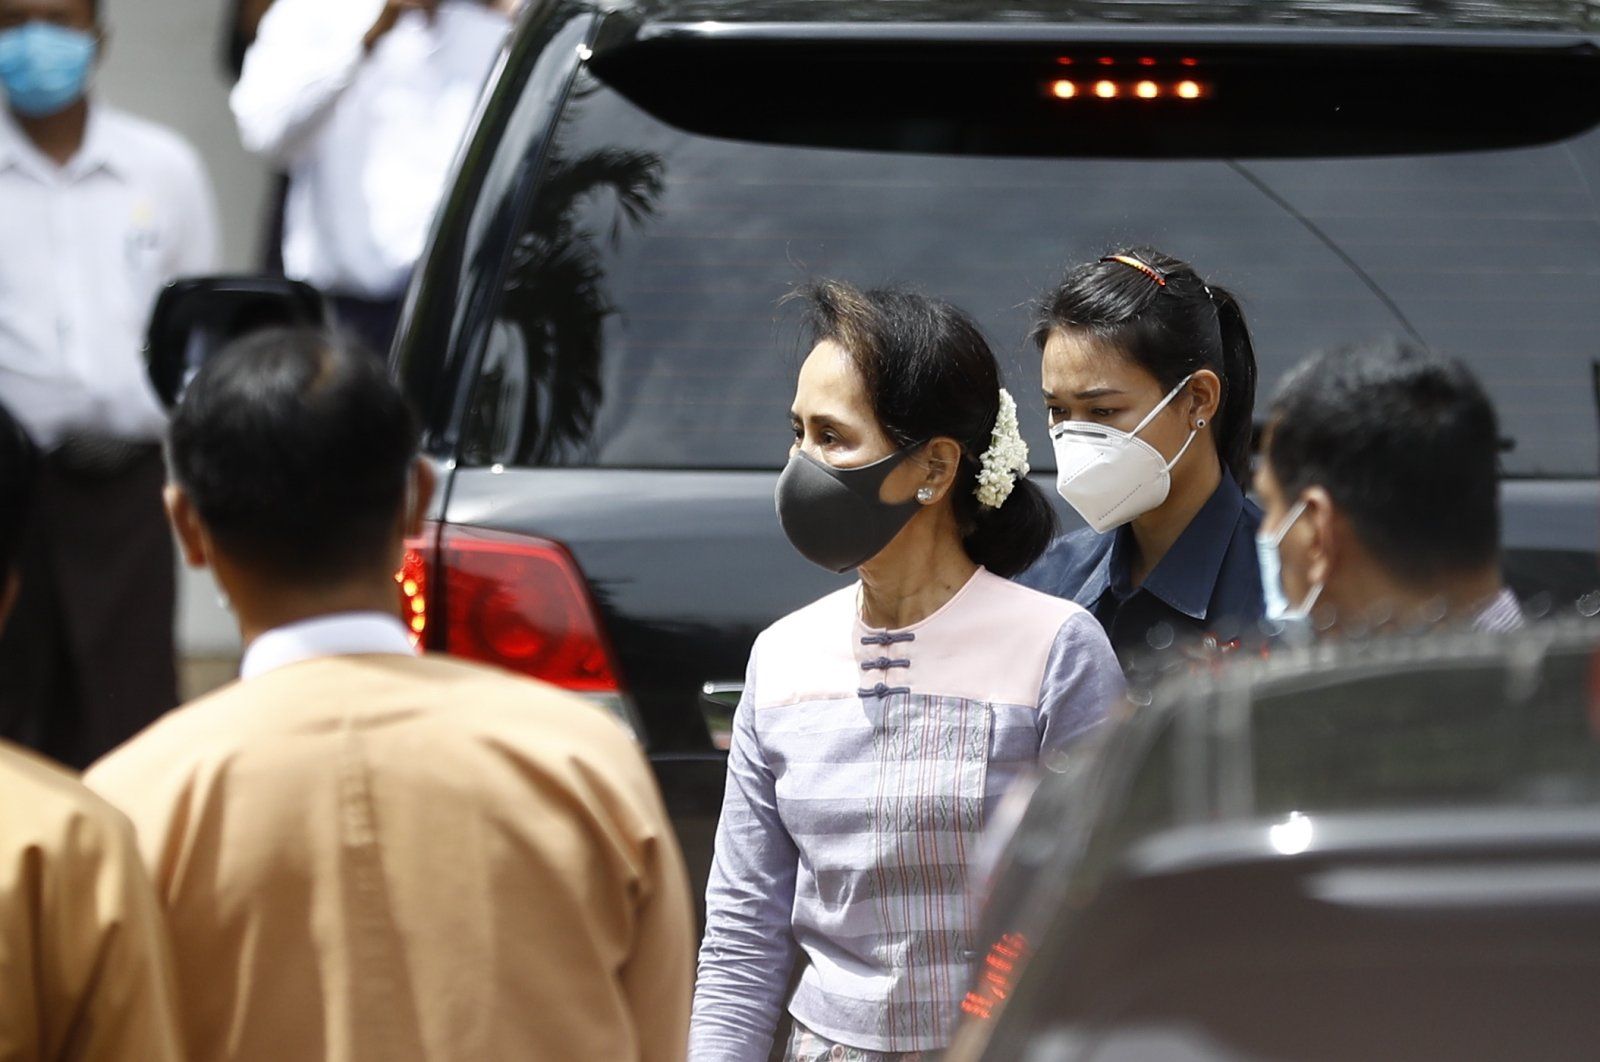 Myanmar State Counsellor Aung San Suu Kyi (C) arrives to perform her candidacy registration at the Union Election Commission Office at Thanlyin township in Yangon, Myanmar, Aug. 4, 2020. (EPA Photo)